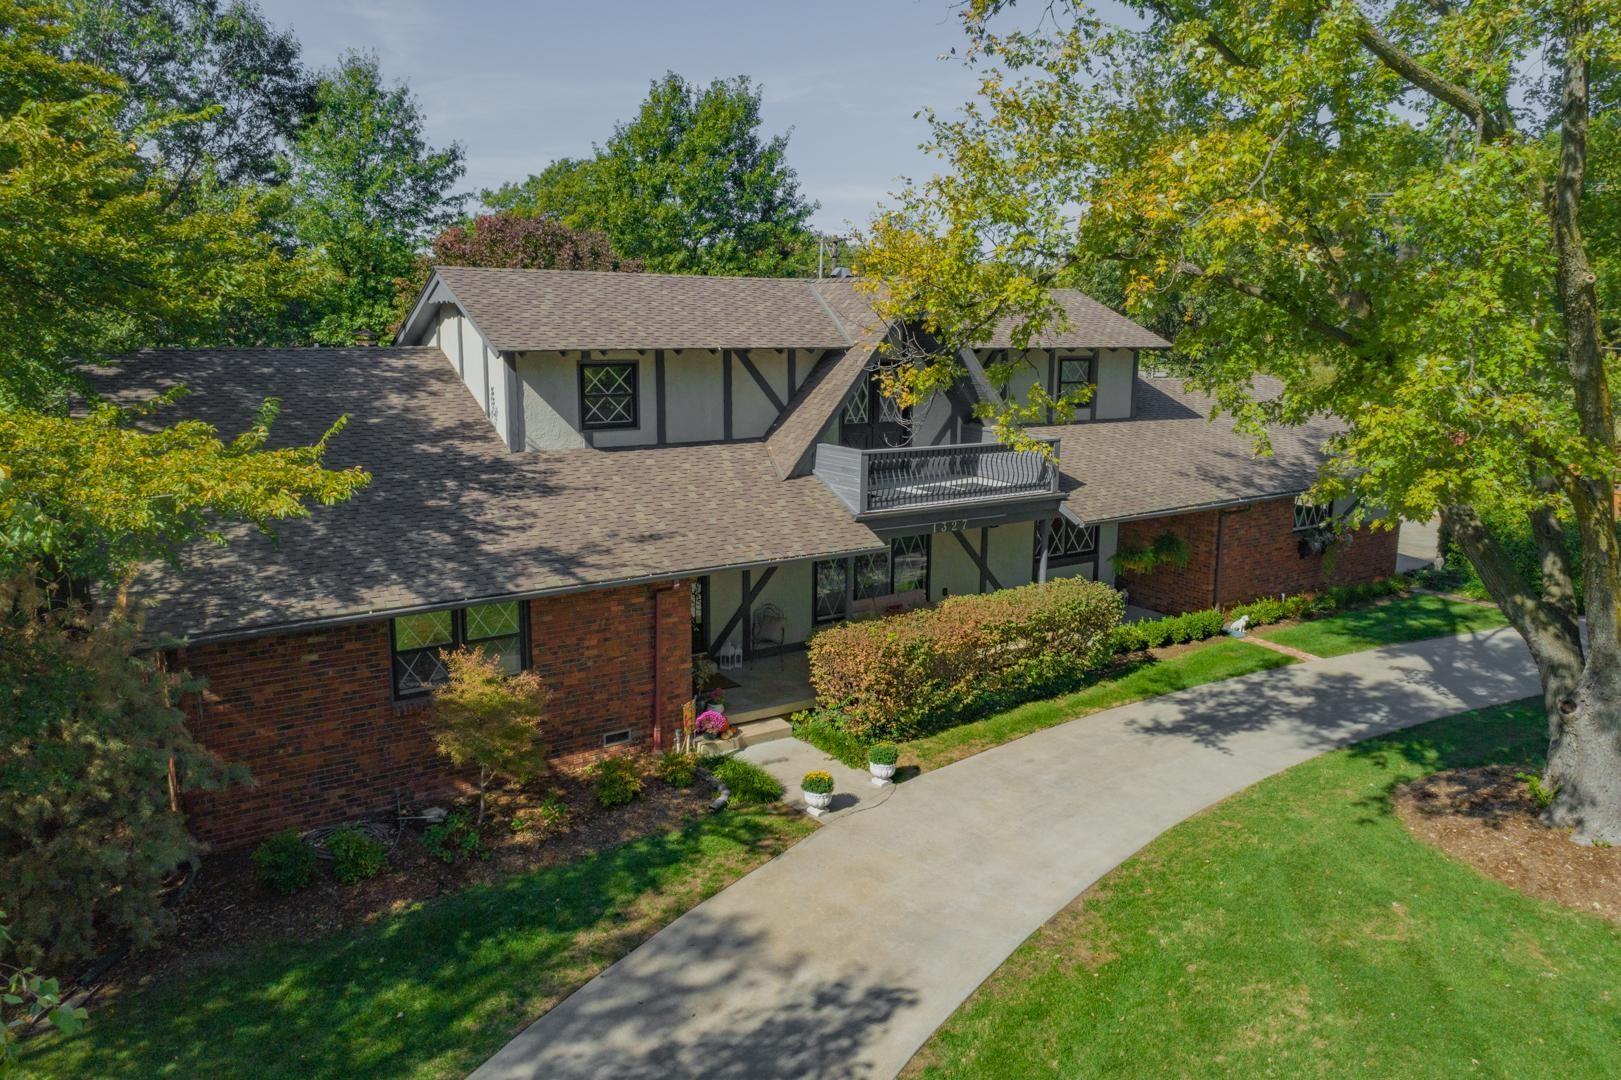 Prepare to fall in love! This home is a dream - meticulously maintained, high end finishes, a saltwa